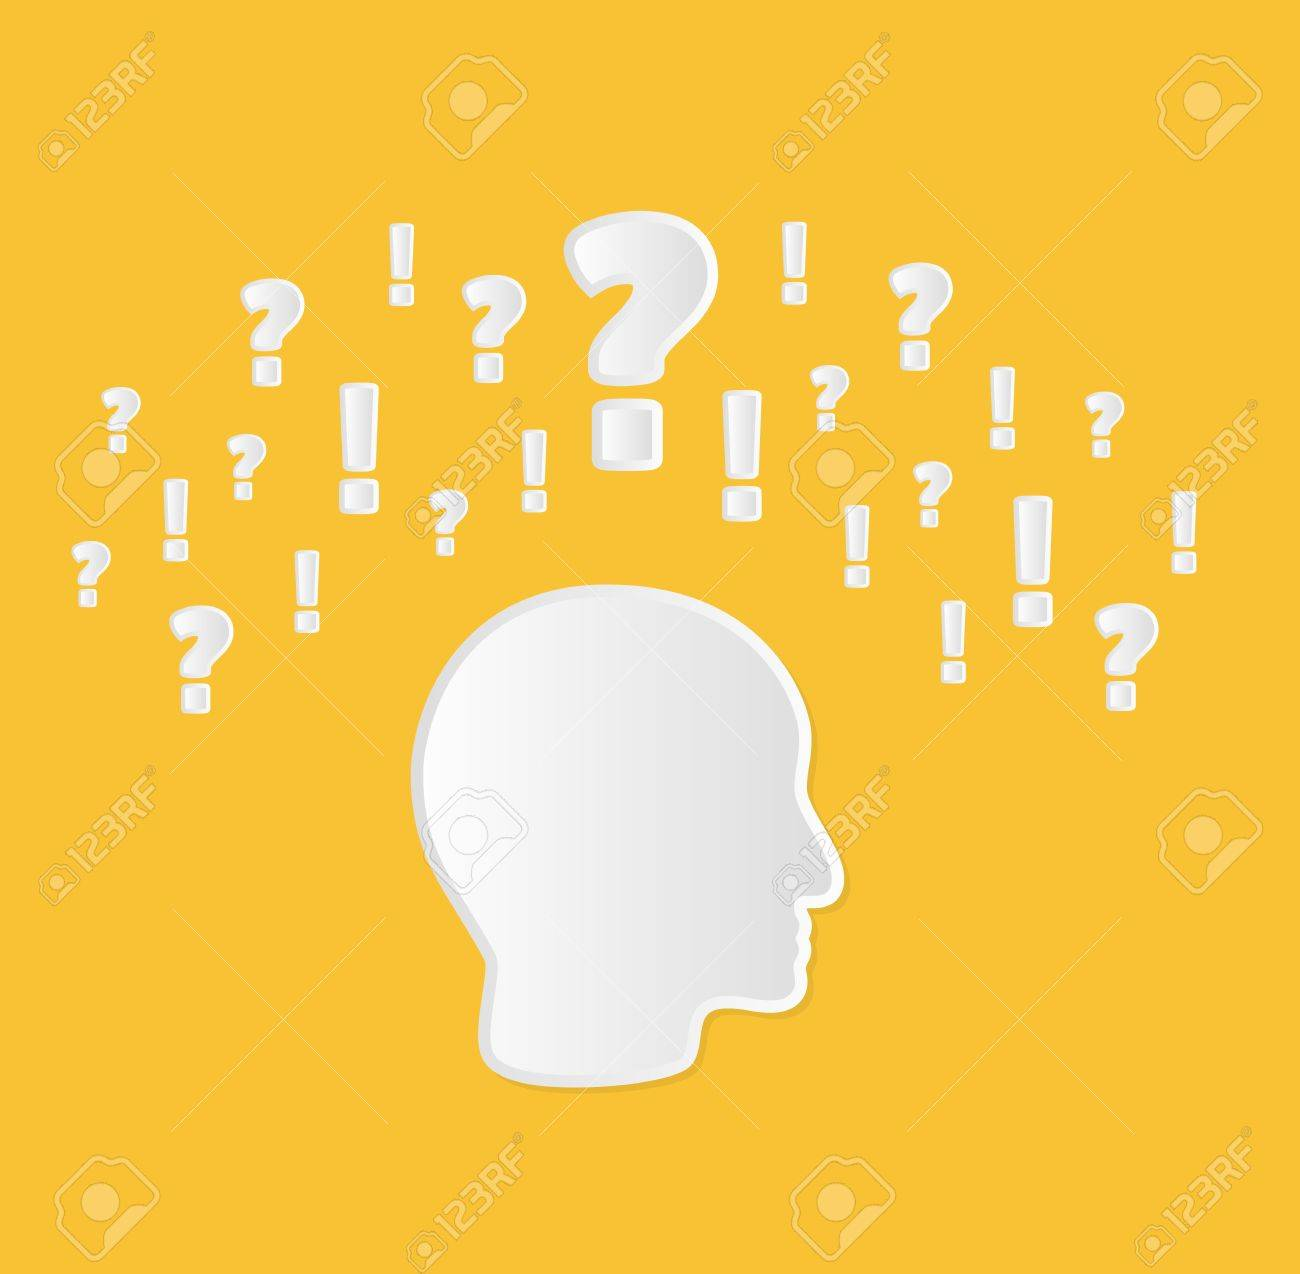 Head With Question Marks And Exclamation Marks As A Symbol Of